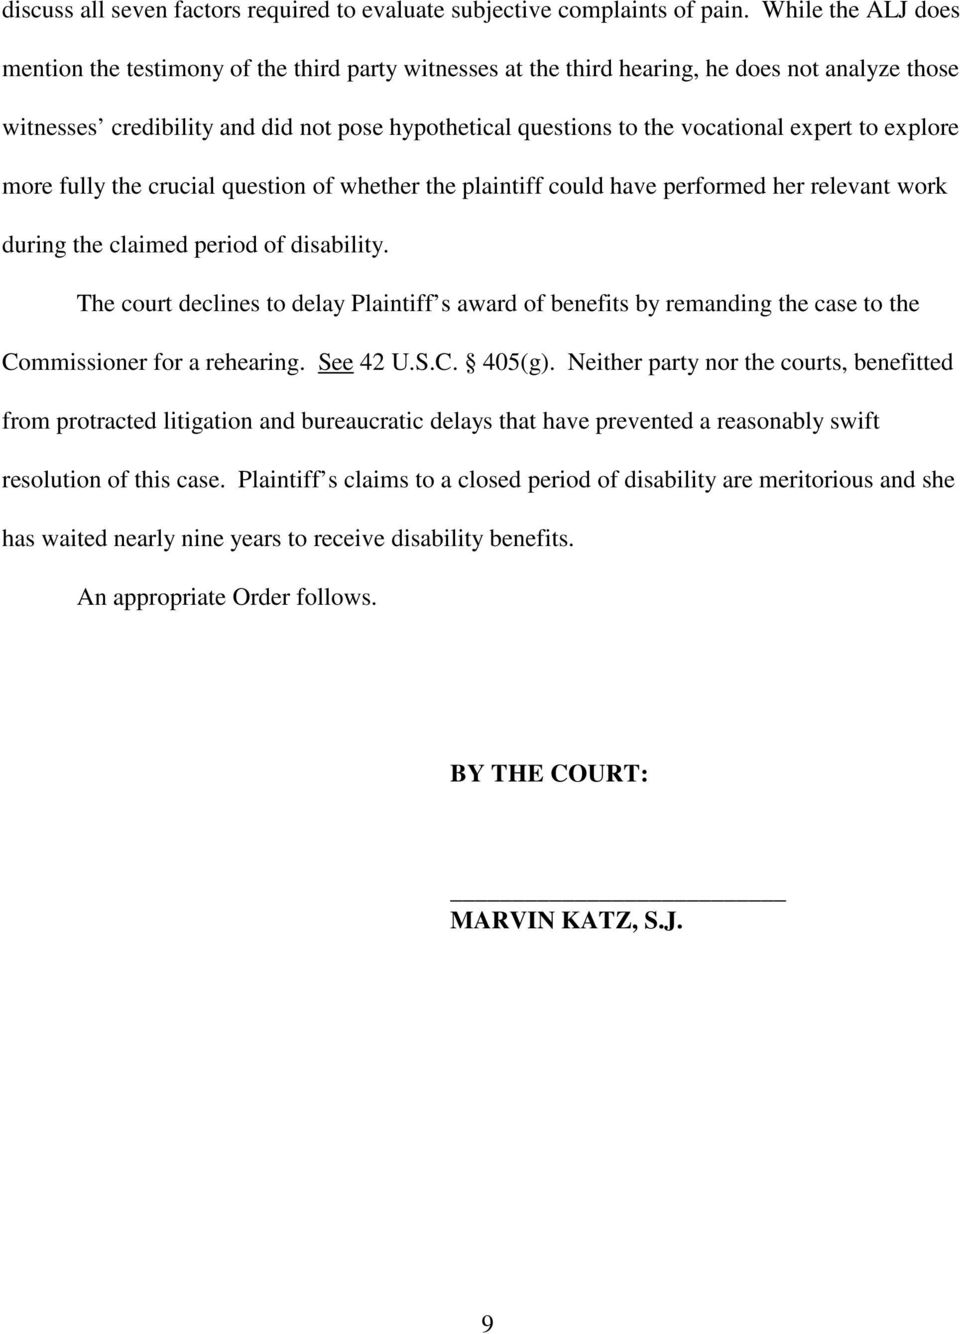 expert to explore more fully the crucial question of whether the plaintiff could have performed her relevant work during the claimed period of disability.